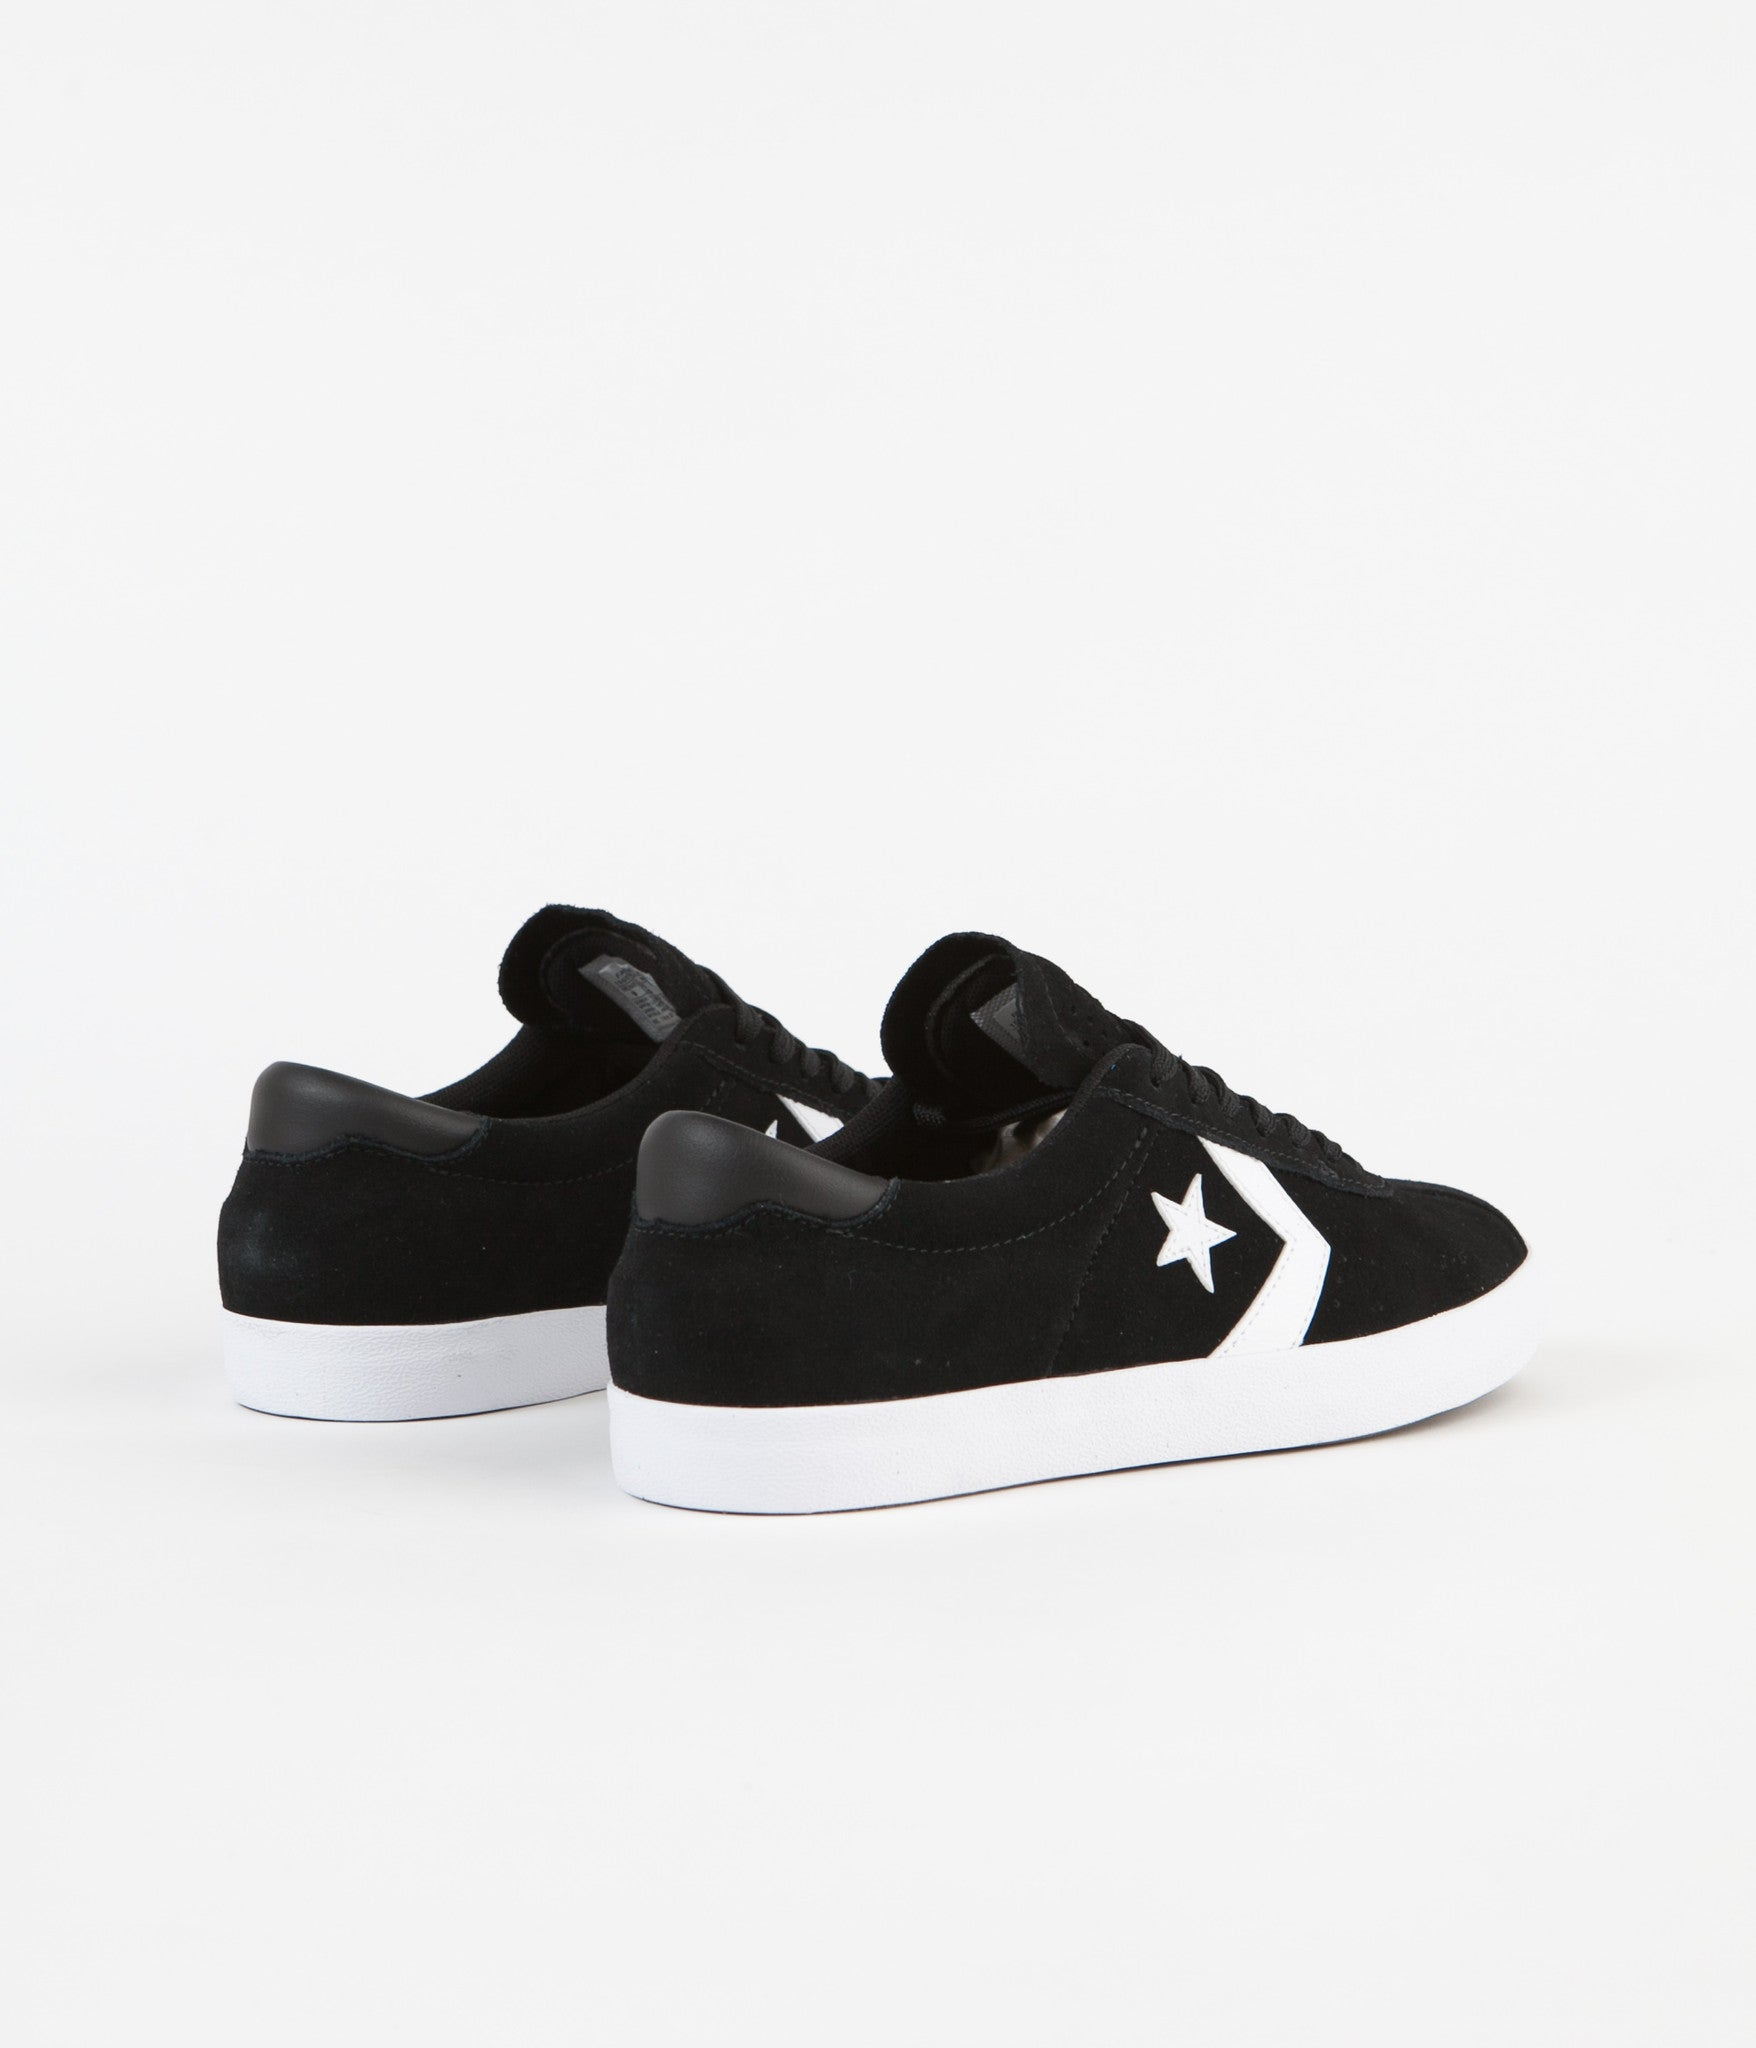 Converse Breakpoint Pro Ox Shoes - Black / White / Black